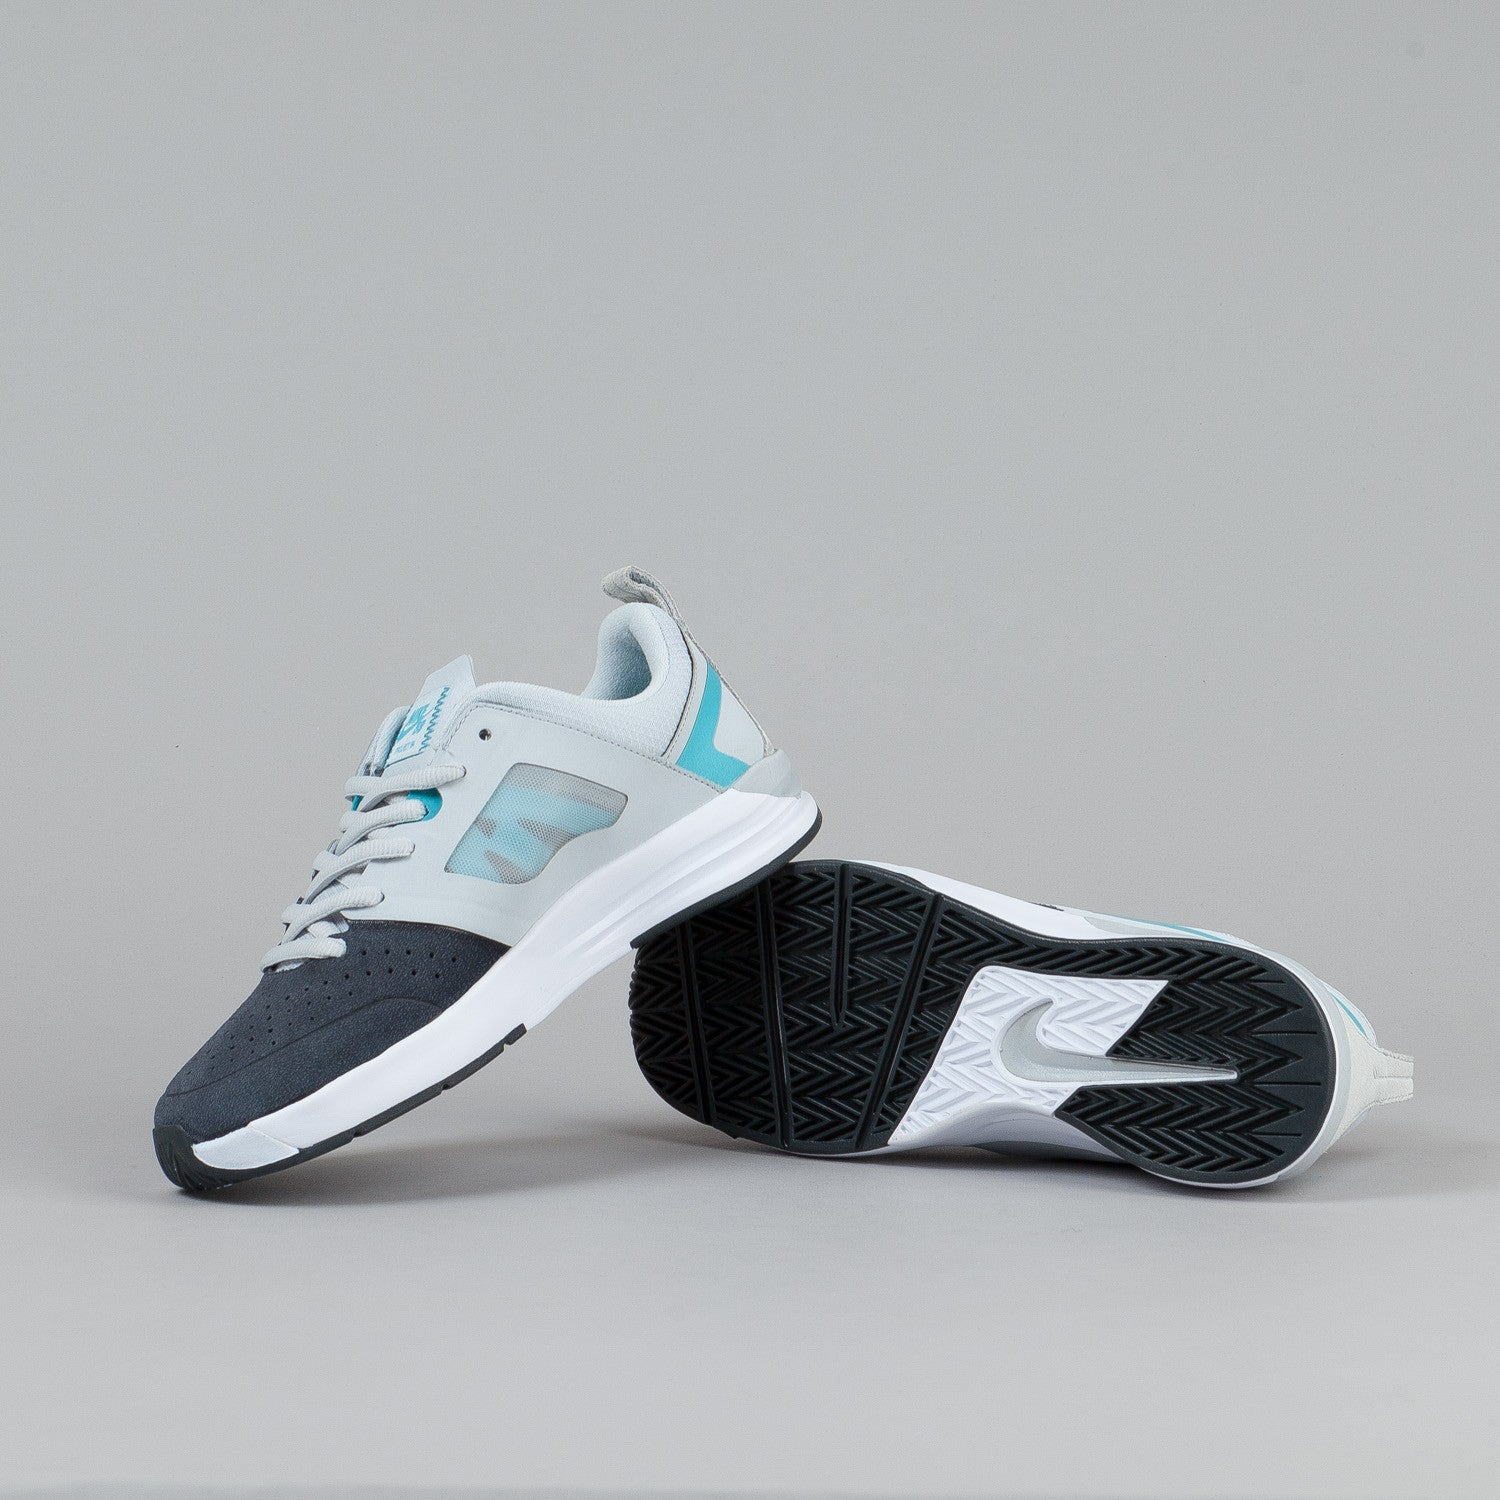 Nike SB Project BA Anthracite/Dusty Cactus - Pure Platinum